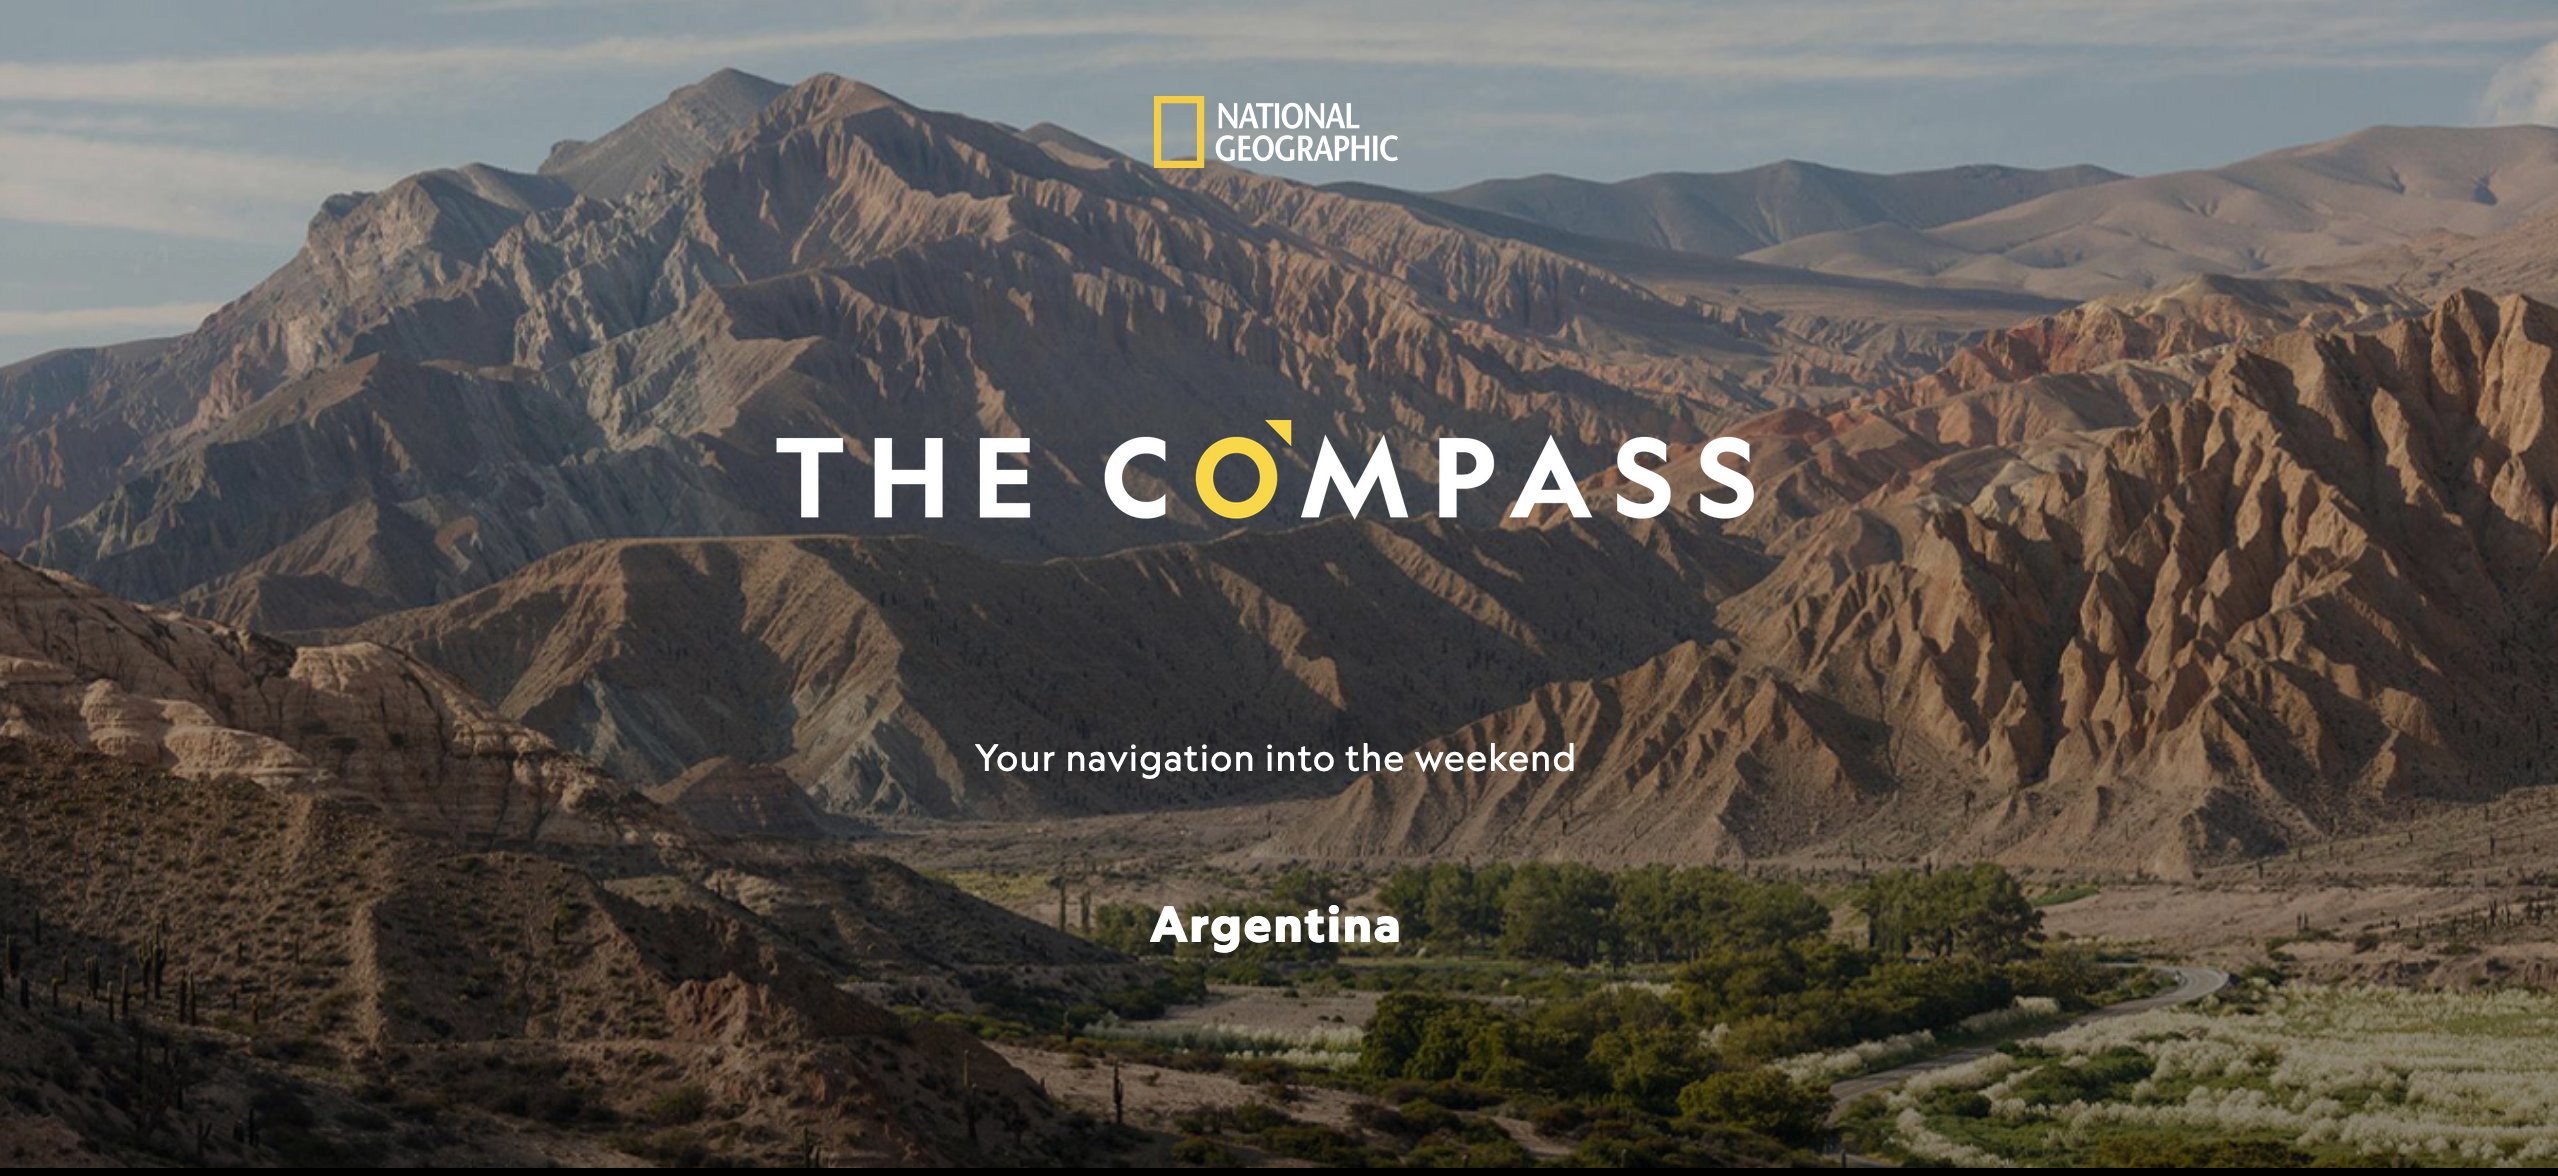 The Compass: Argentina